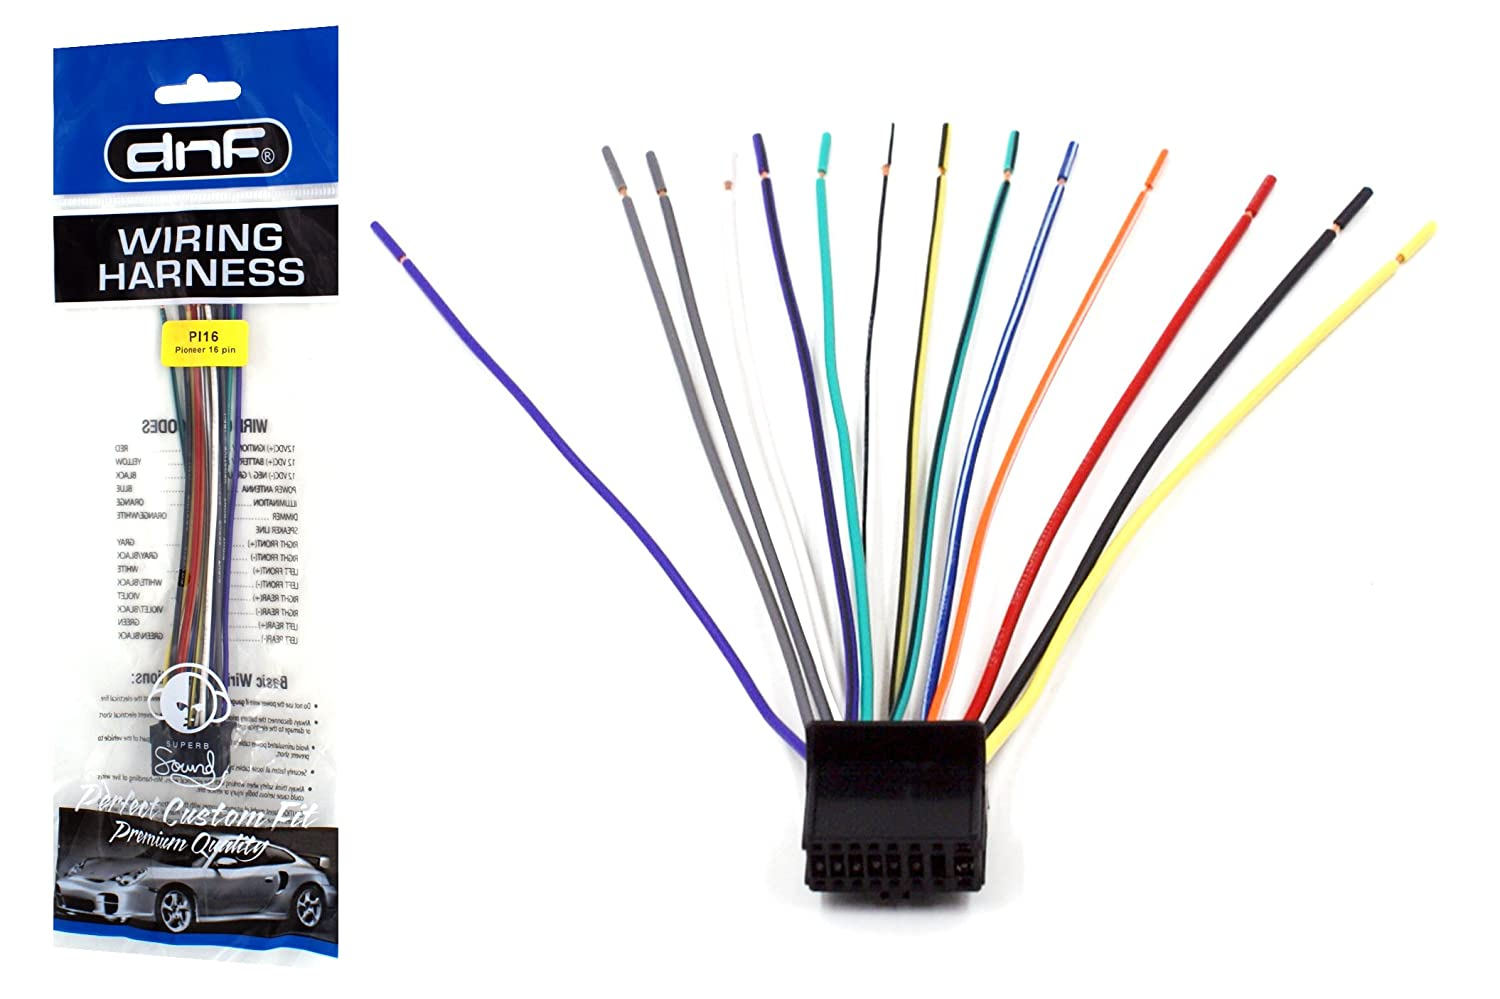 71A5xHv4deL._SL1500_ amazon com dnf pioneer wiring harness 0307 deh p4000ub deh p400ub pioneer deh-p7600mp wiring diagram at fashall.co